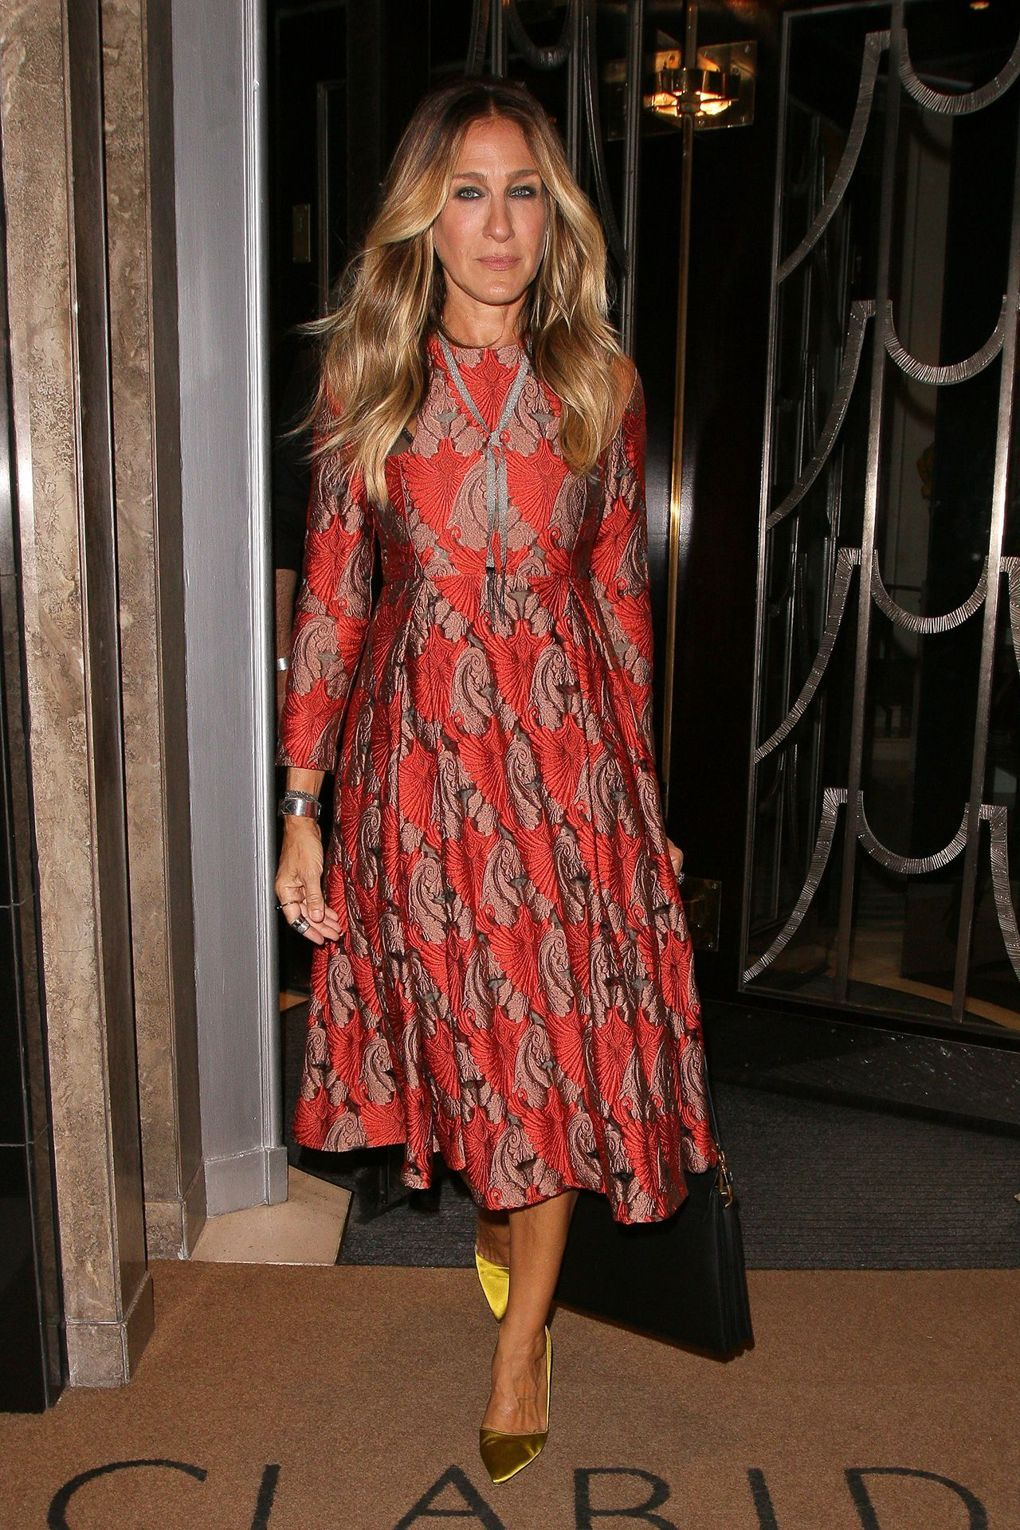 Sarah Jessica Parker wearing Emilia Wickstead in London